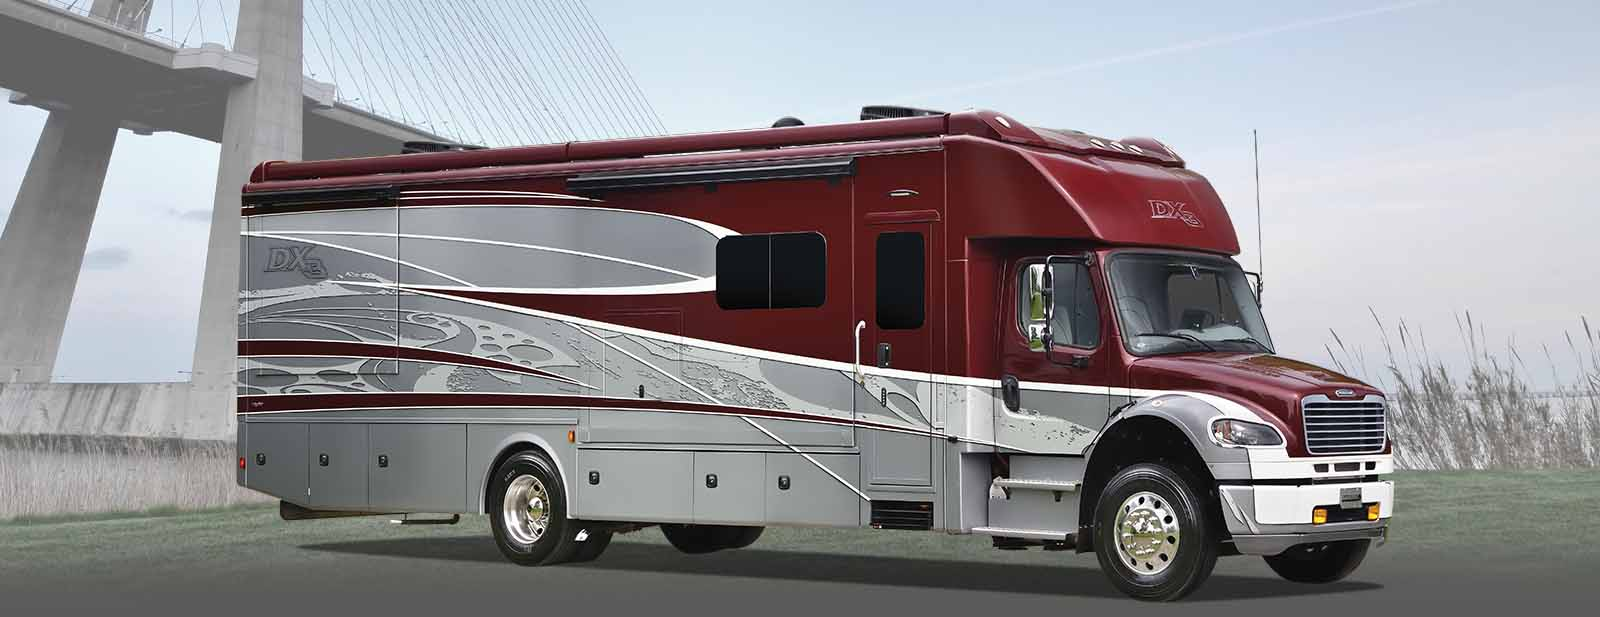 DX3 | Dynamax - Manufacturer of Luxury Class C & Super C Motorhomes